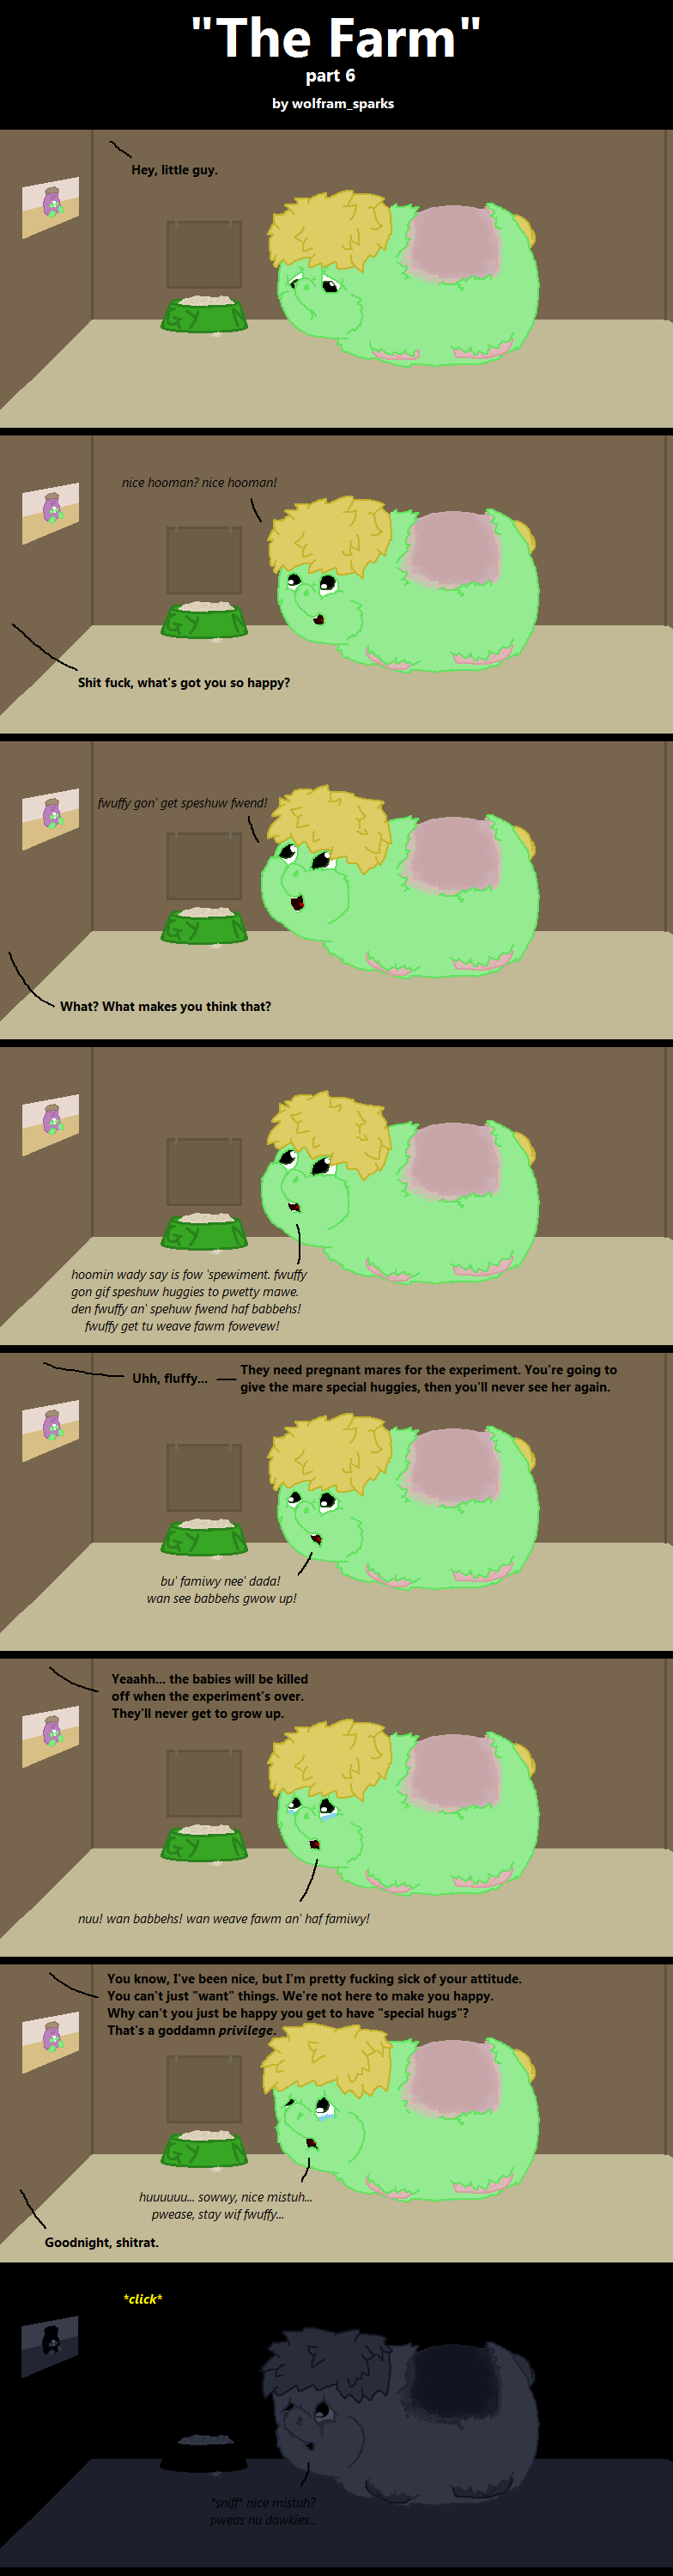 21531 - abuse amputee artist-wolfram_sparks comic crying experiment psychological_abuse questi...png